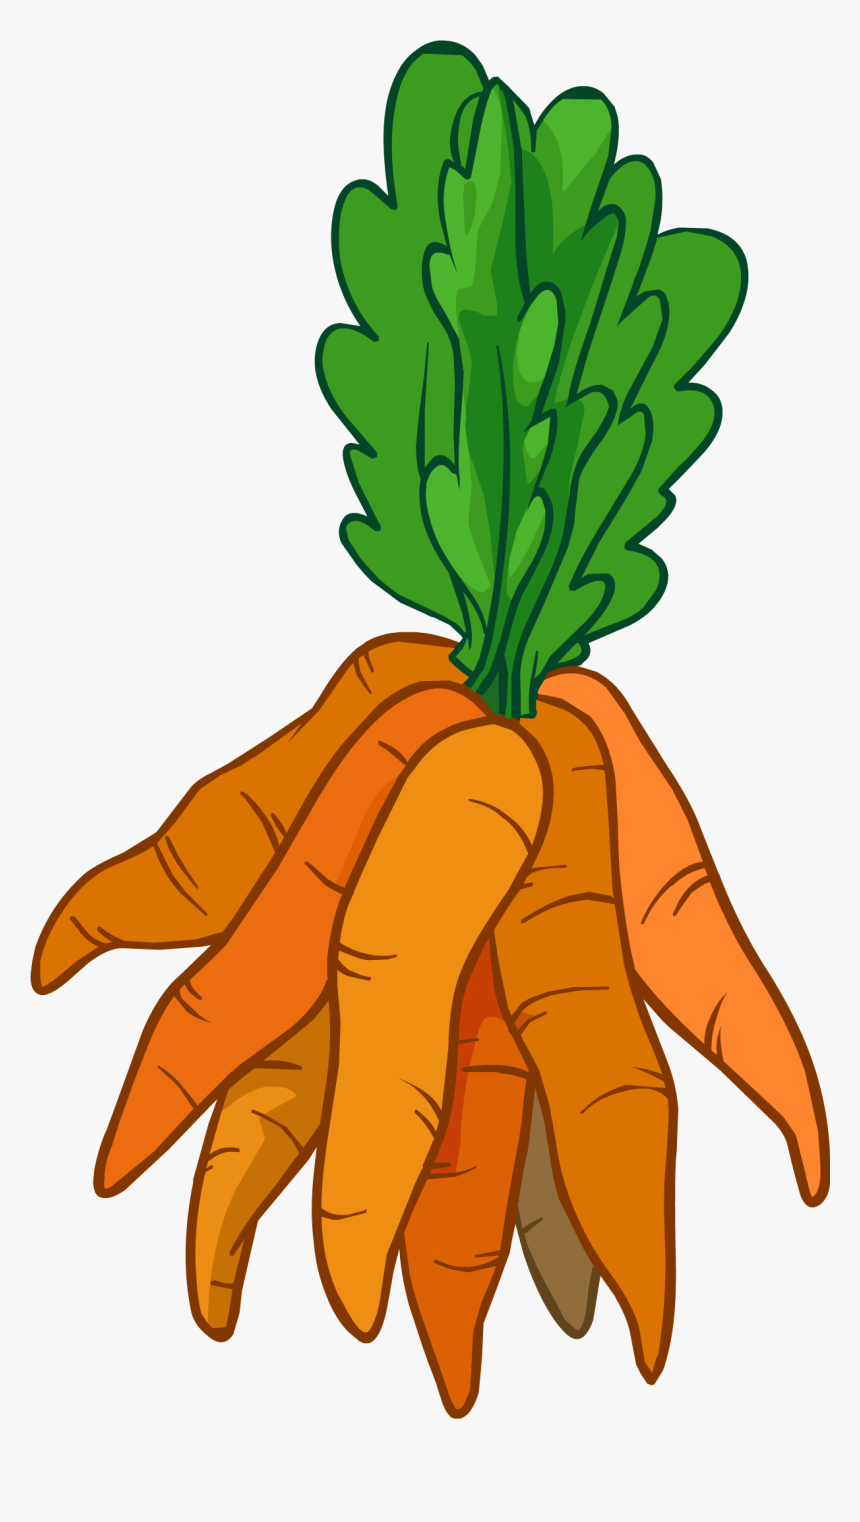 Image - Bunch Of Carrots Clipart, HD Png Download, Free Download